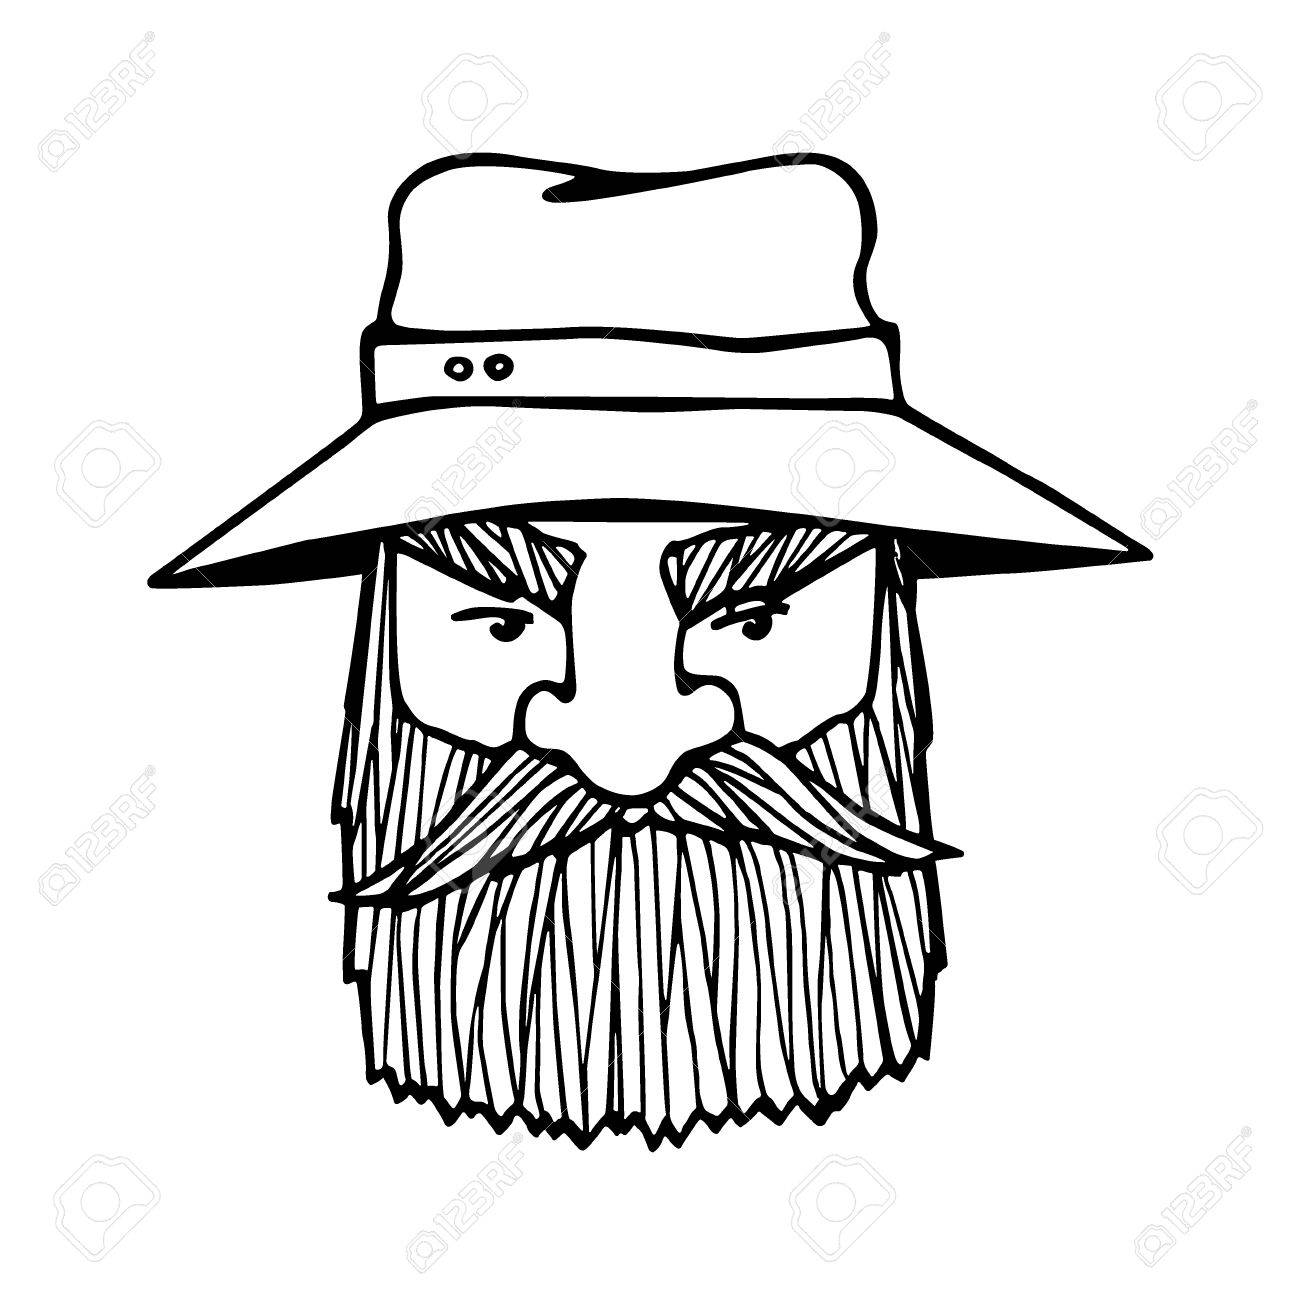 1300x1300 Hand Drawn Head Of Bearded Man With Cap On. Vector Illustration